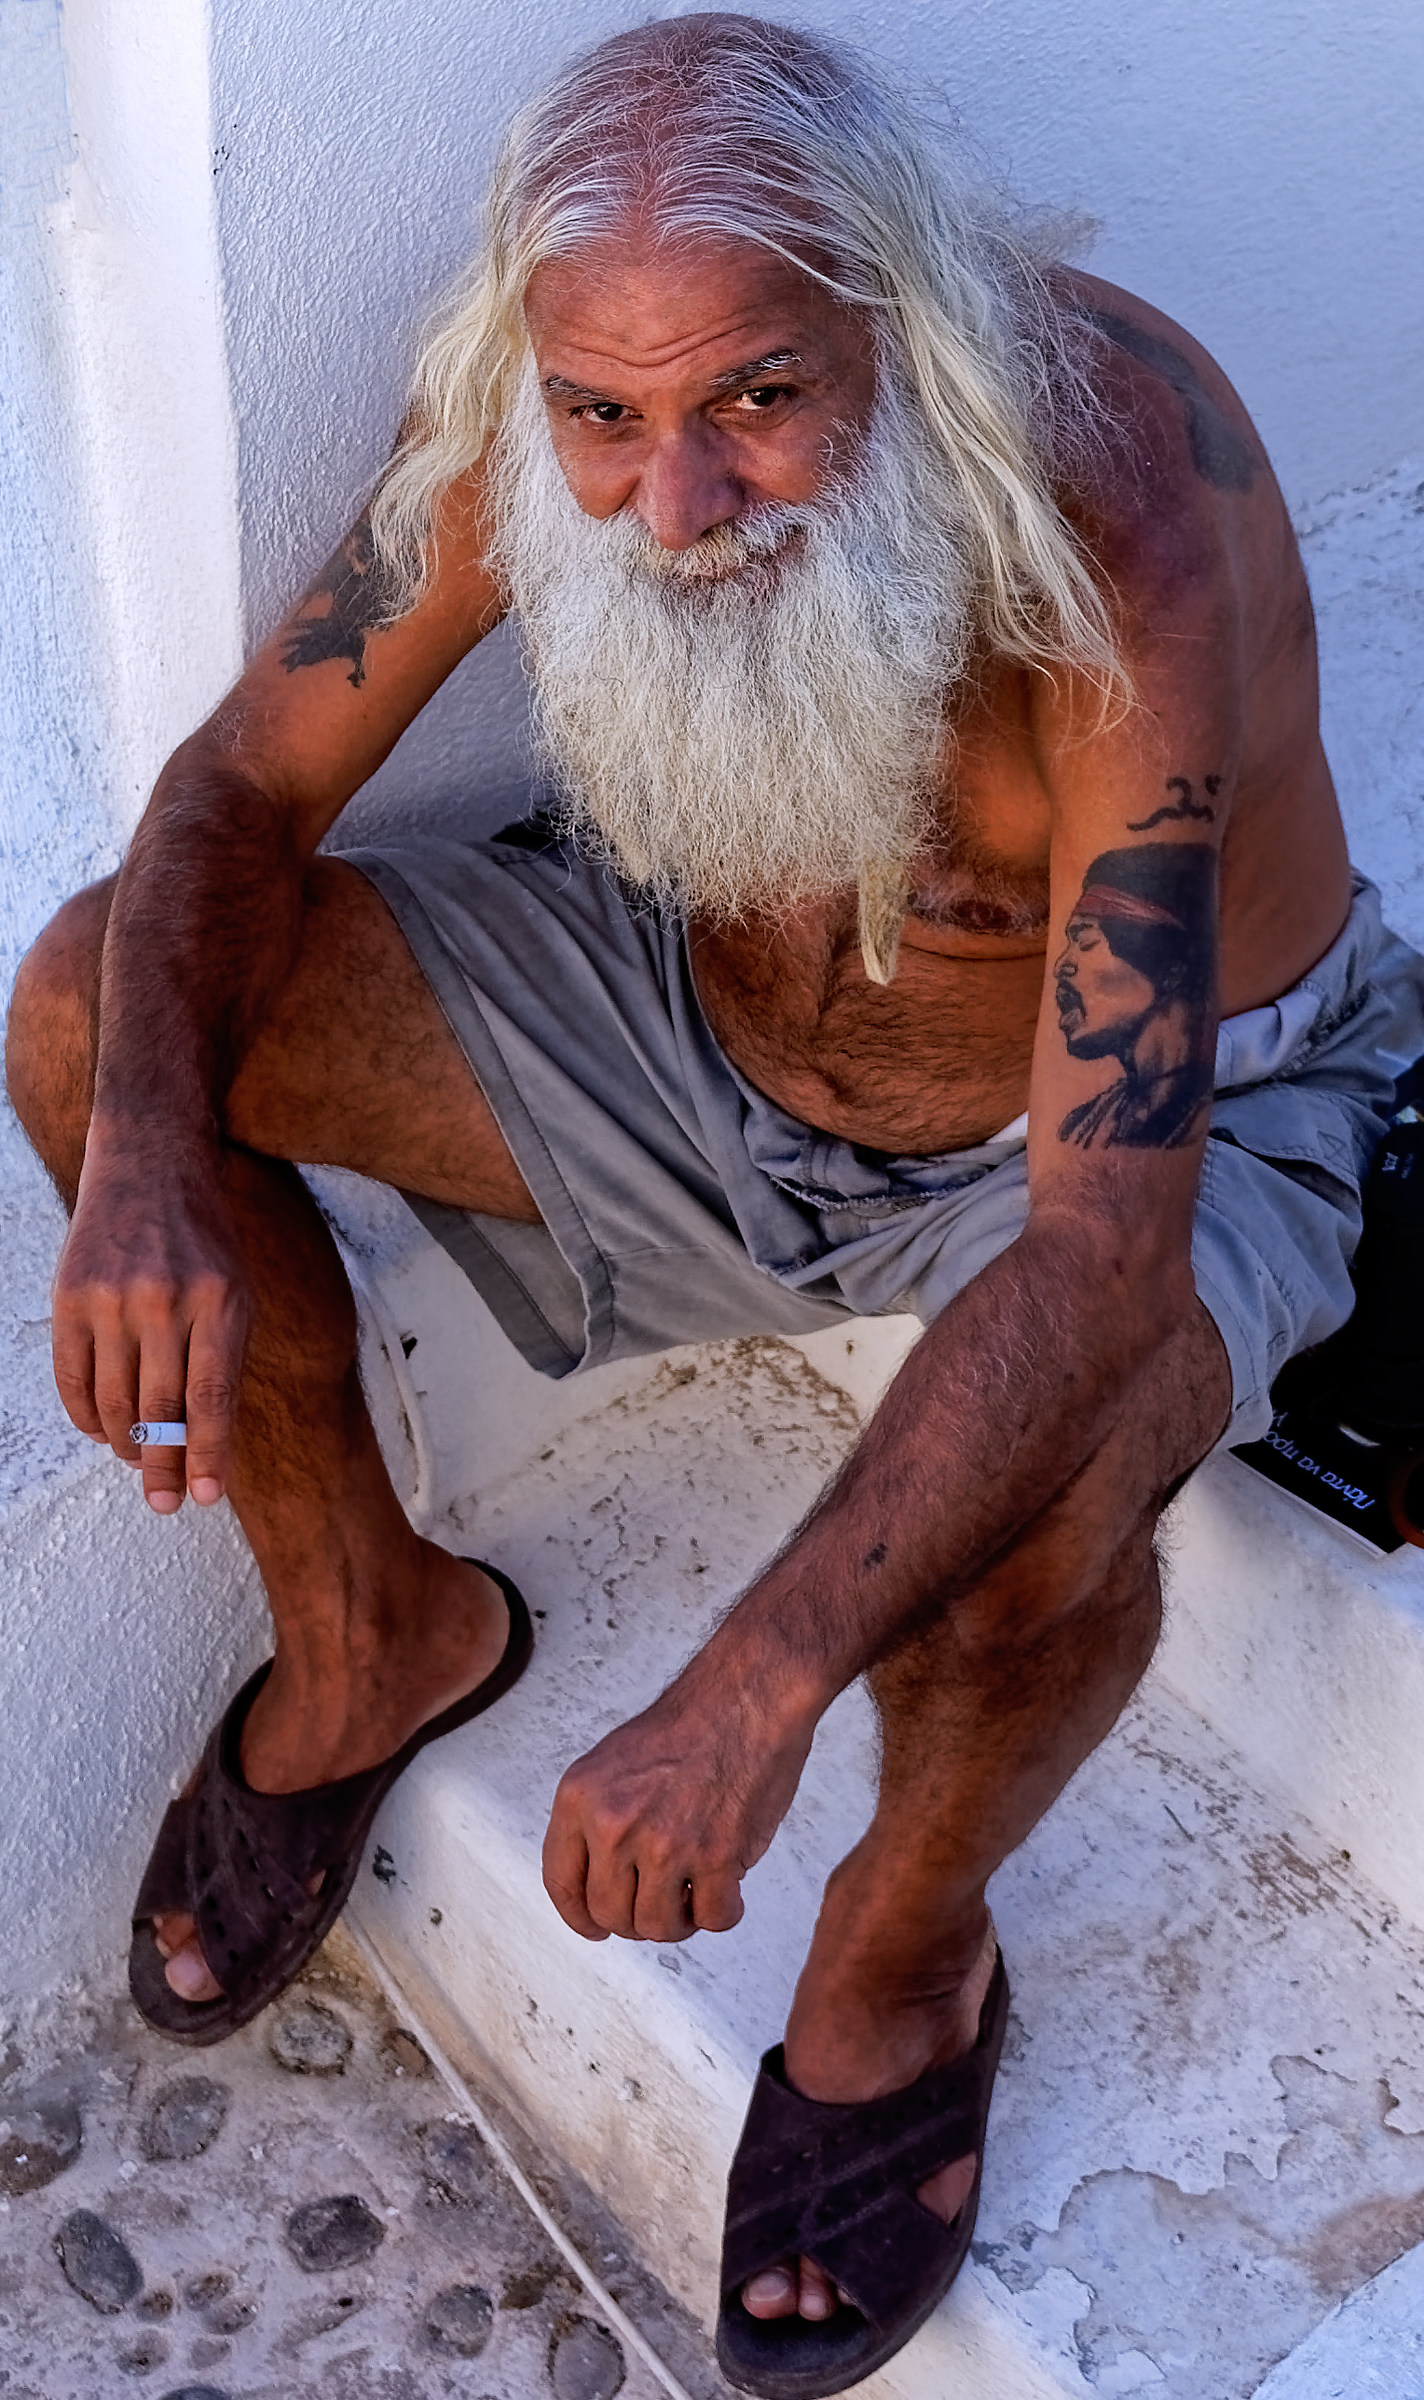 The old fisherman...